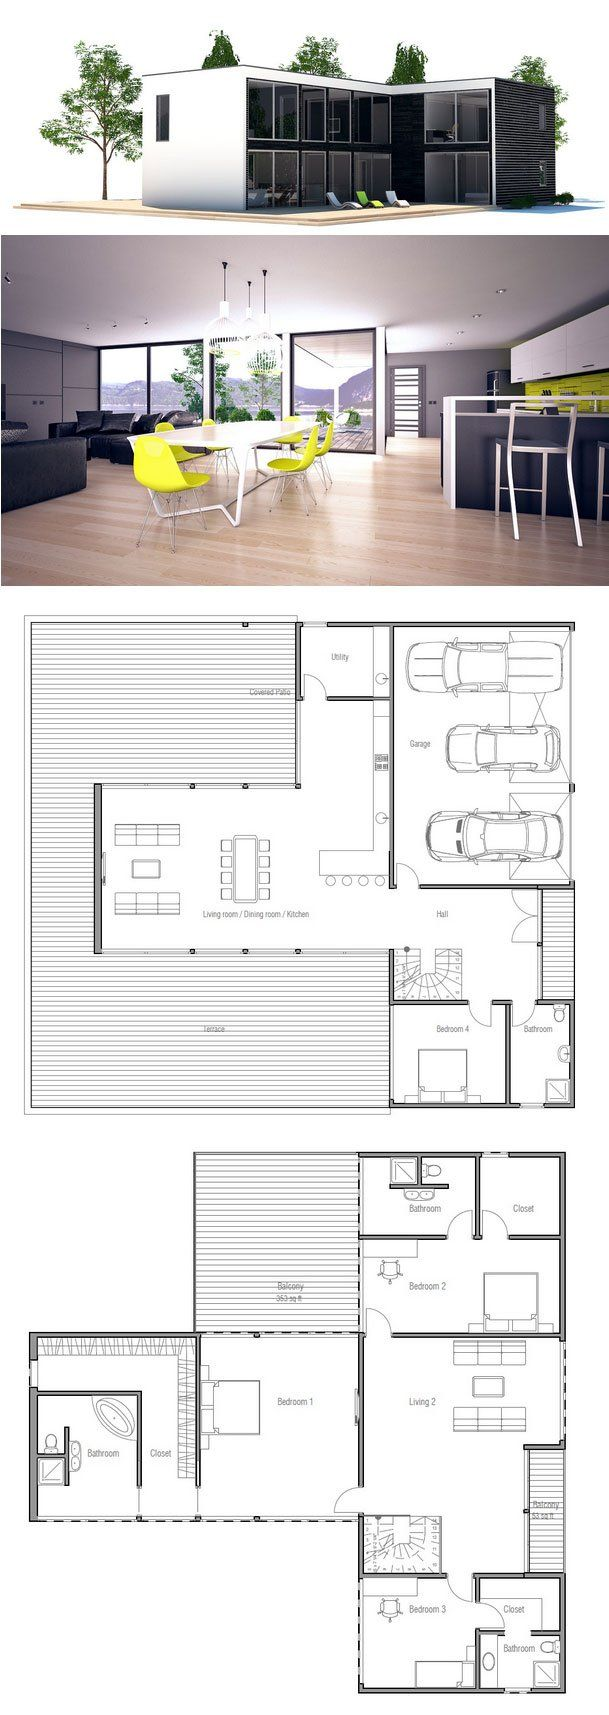 Large contemporary home plan with four bedrooms. Open planning and abundance of natural light. Master bedroom with big closet and bathroom and large balcony.